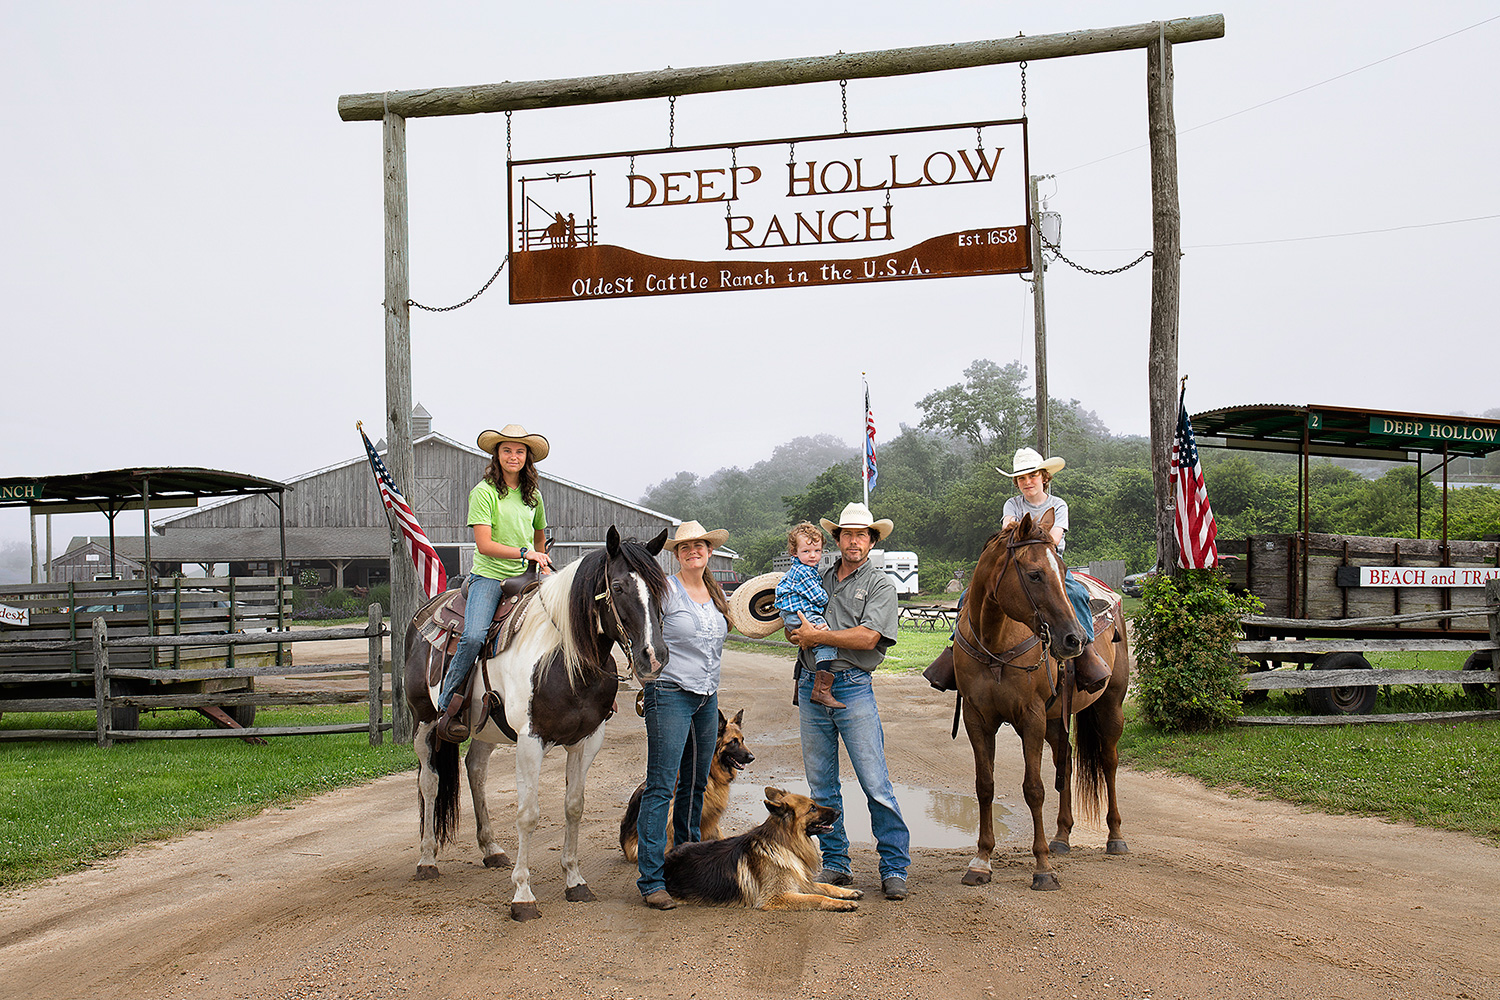 The Keogh Family: Patrick, Cate, Francesca, Broudy, Rohan, Ranchers, Proprietors, Deep Hollow Ranch